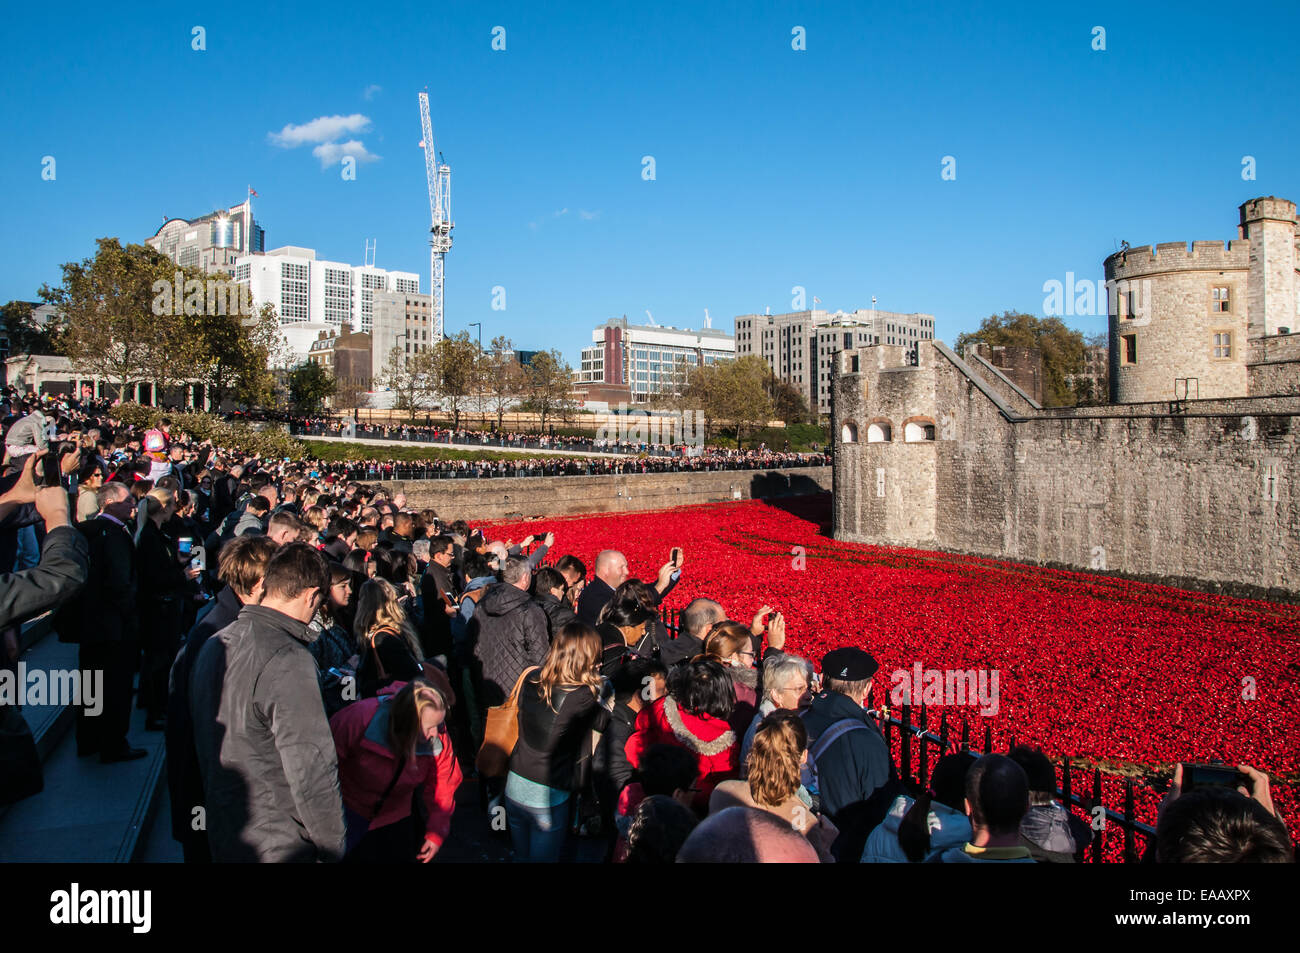 Blood Swept Lands and Seas of Red is a 2014 work of installation art placed in the moat of the Tower of London for Stock Photo